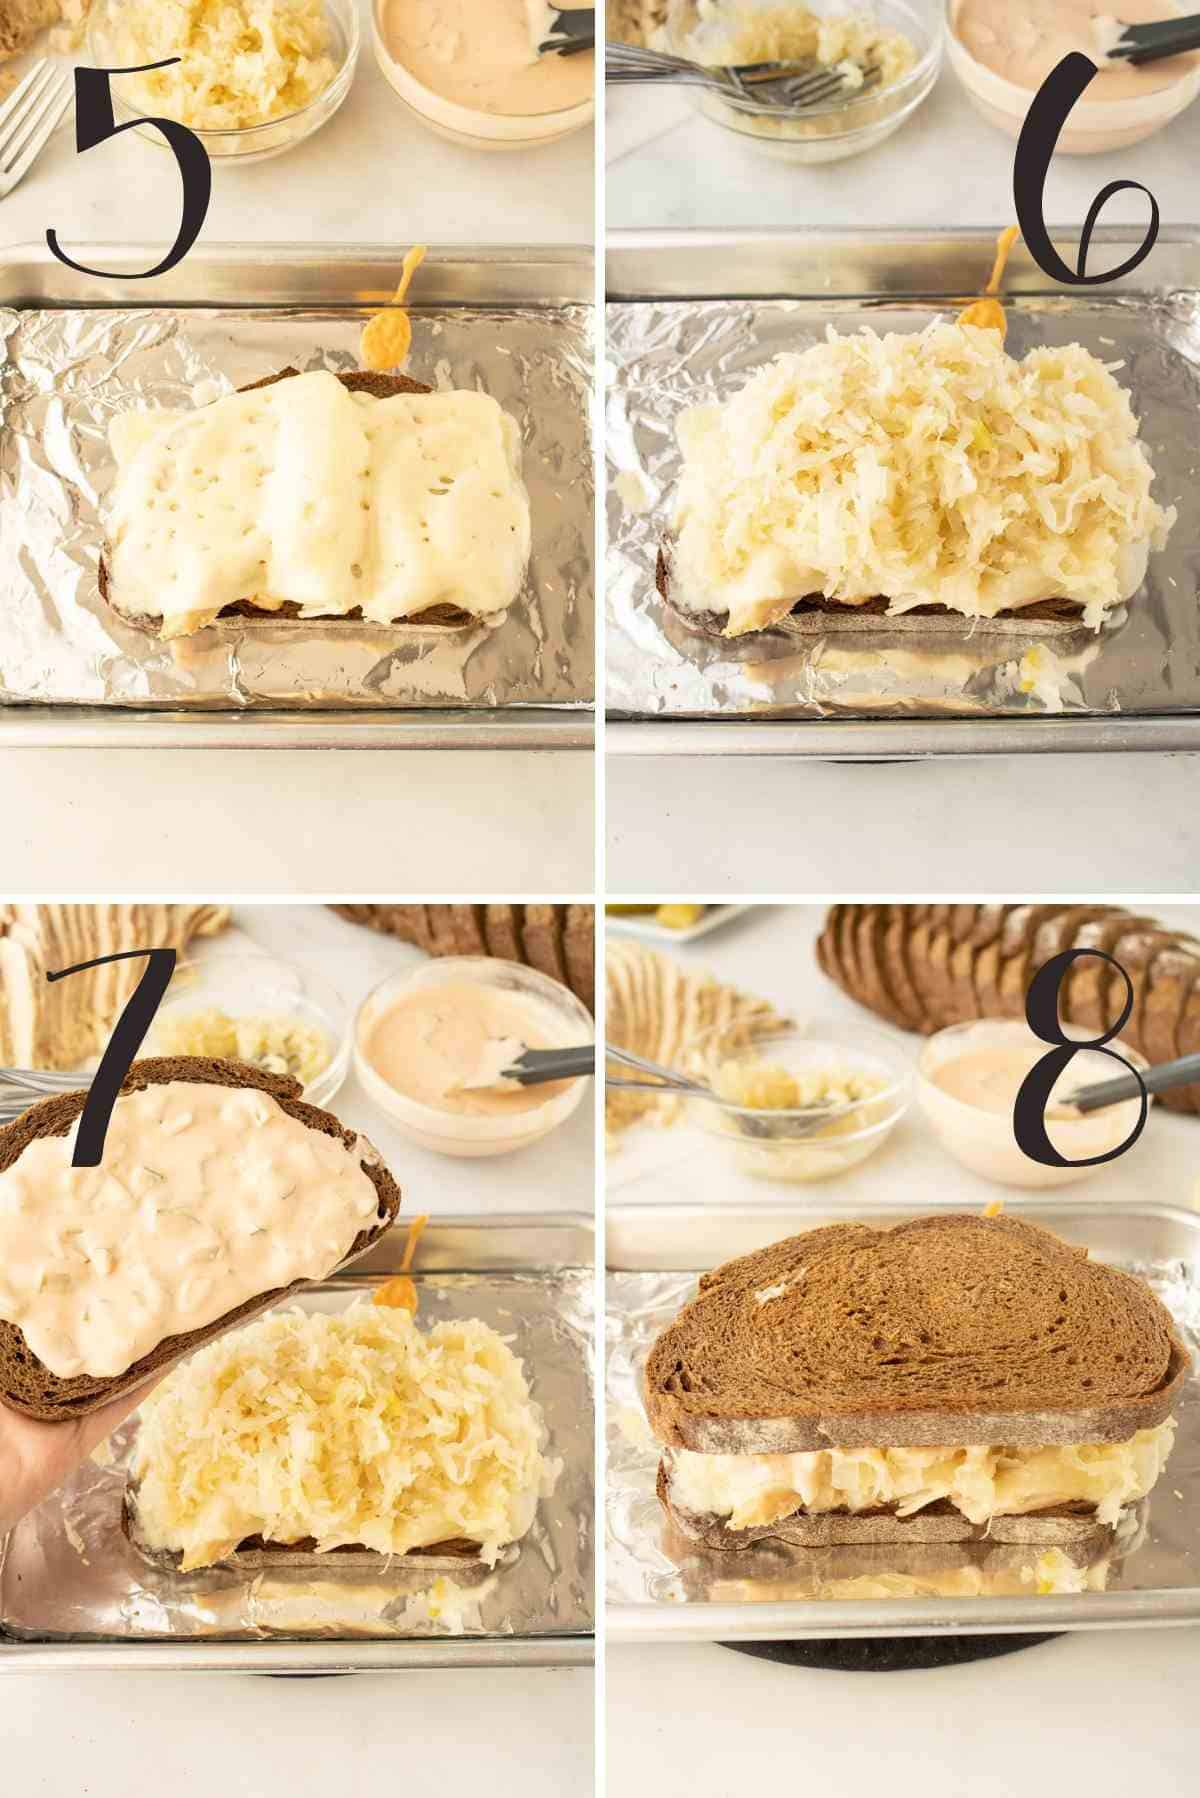 Steps shown as swiss melted, topped with sauerkraut and topped with top piece of bread with dressing on it.